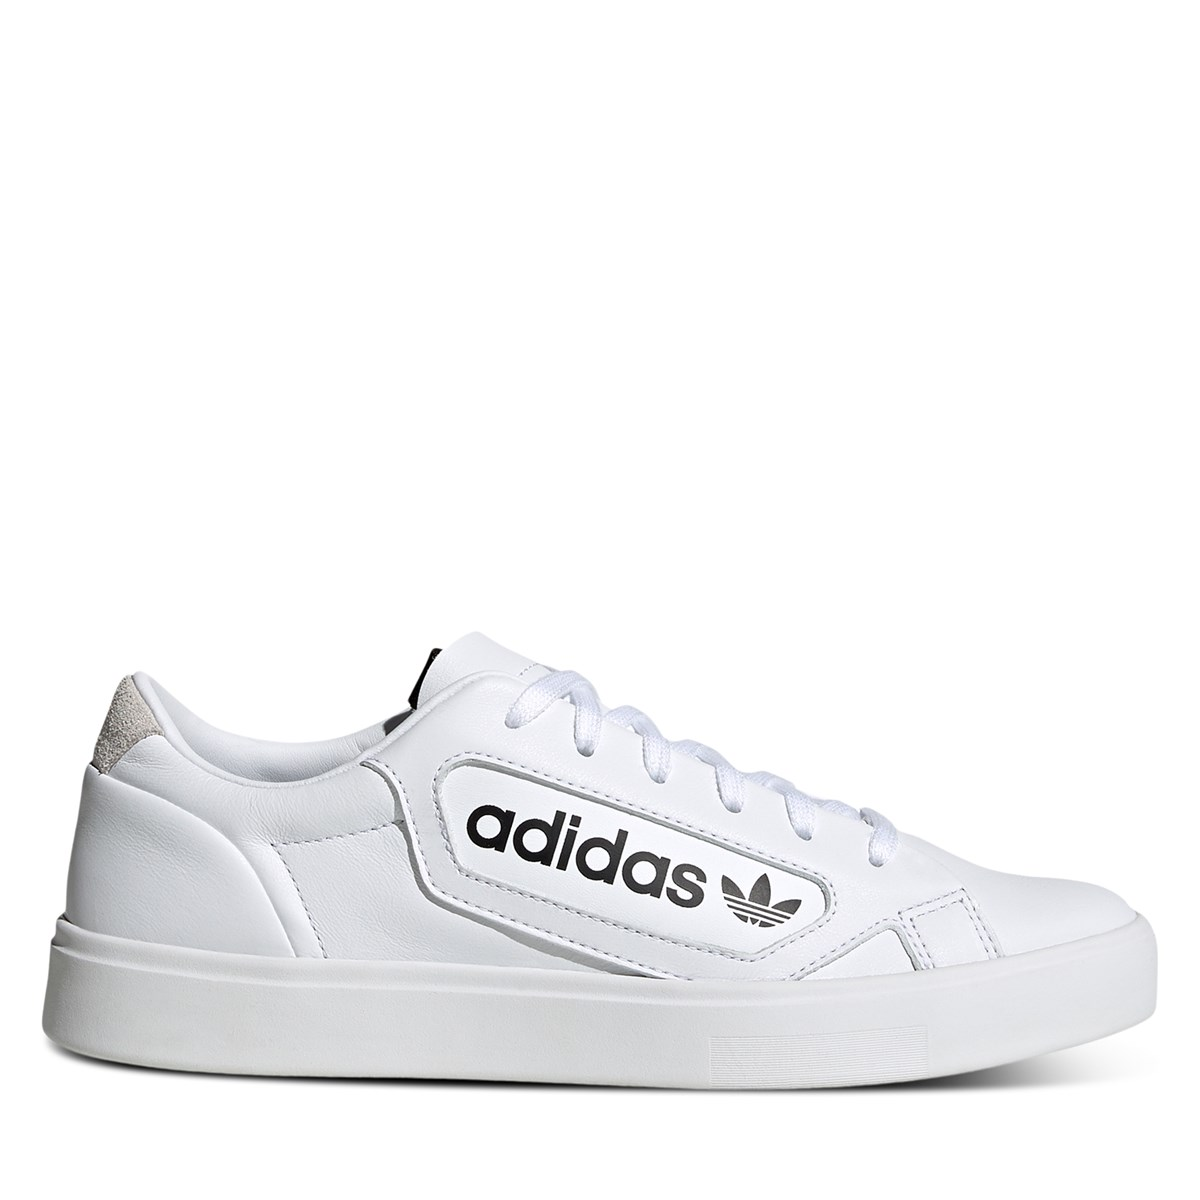 Women's Branded Sleek Sneakers in White